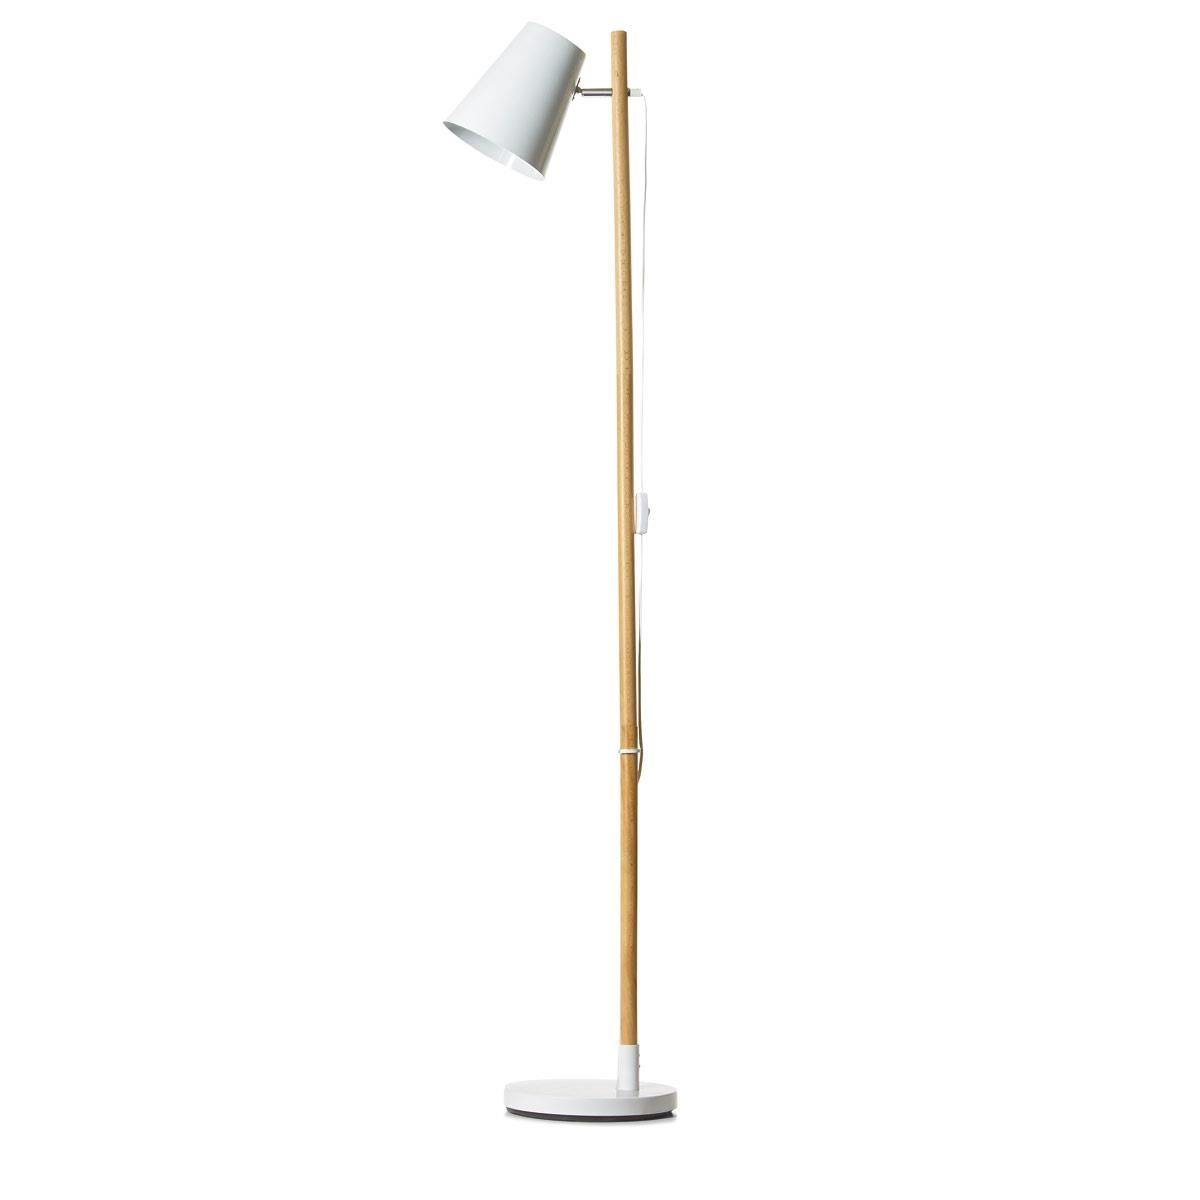 Awesome Floor Lamp · Http://www.kmart.co.nz/product/madera